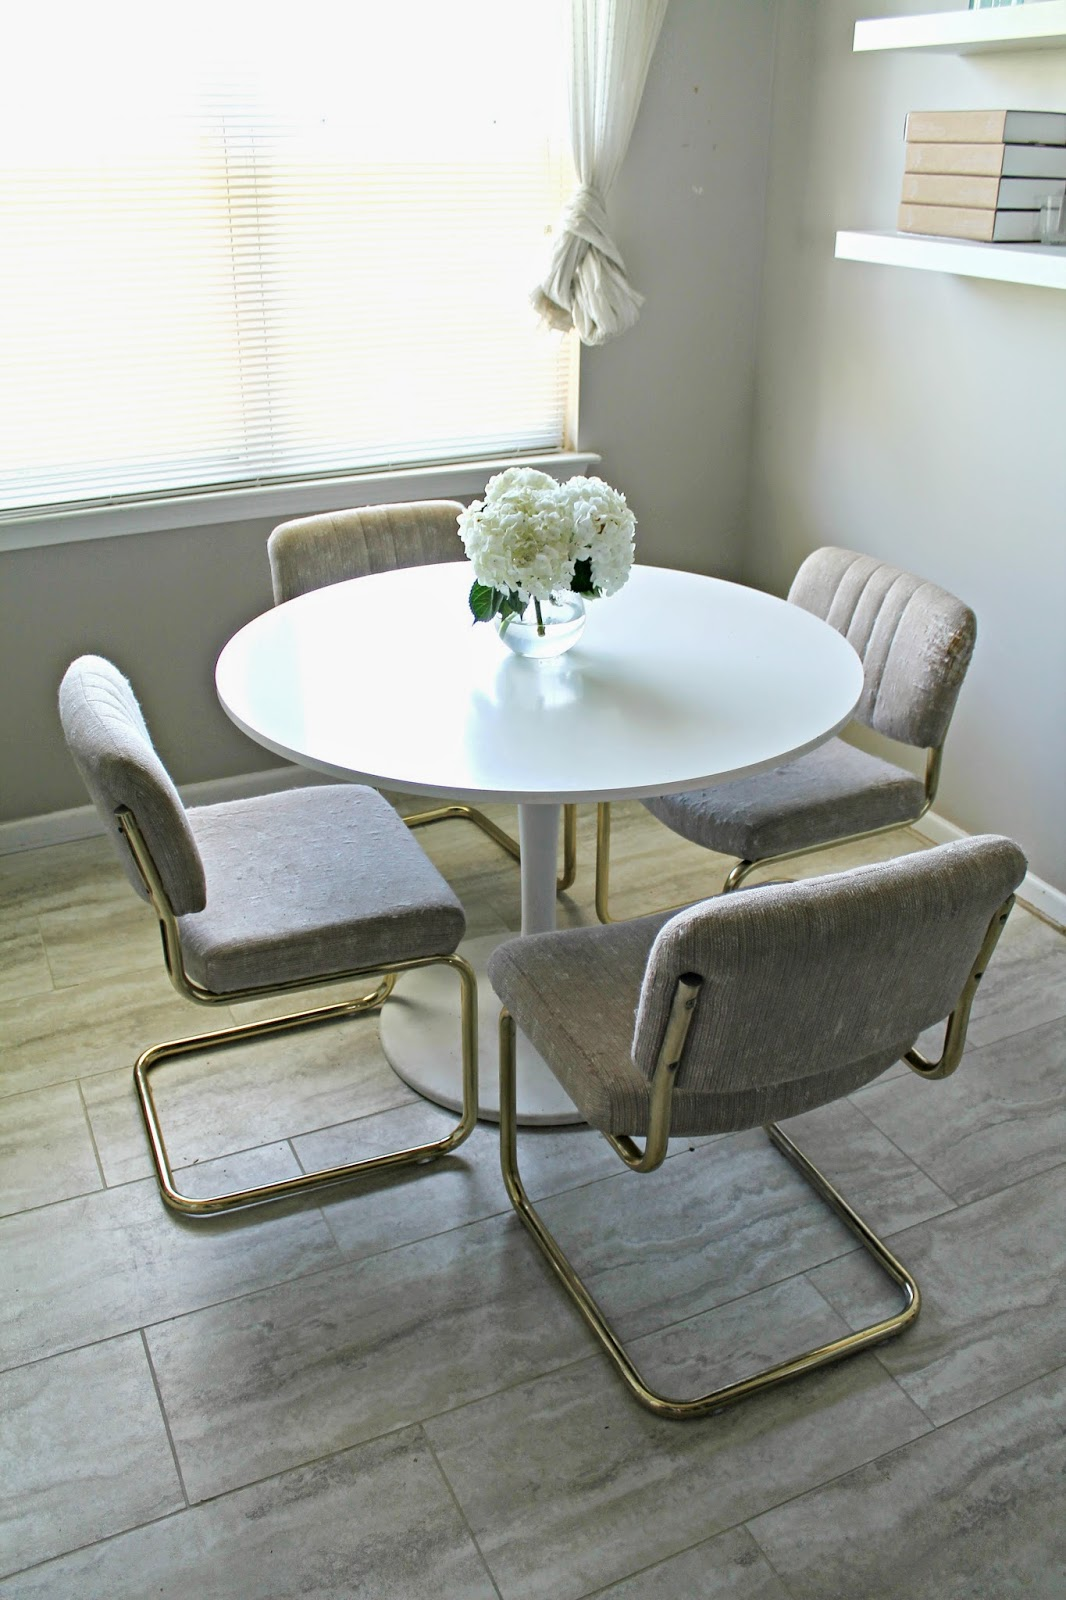 craigslist score kitchen table and chairs shannon claire. Black Bedroom Furniture Sets. Home Design Ideas